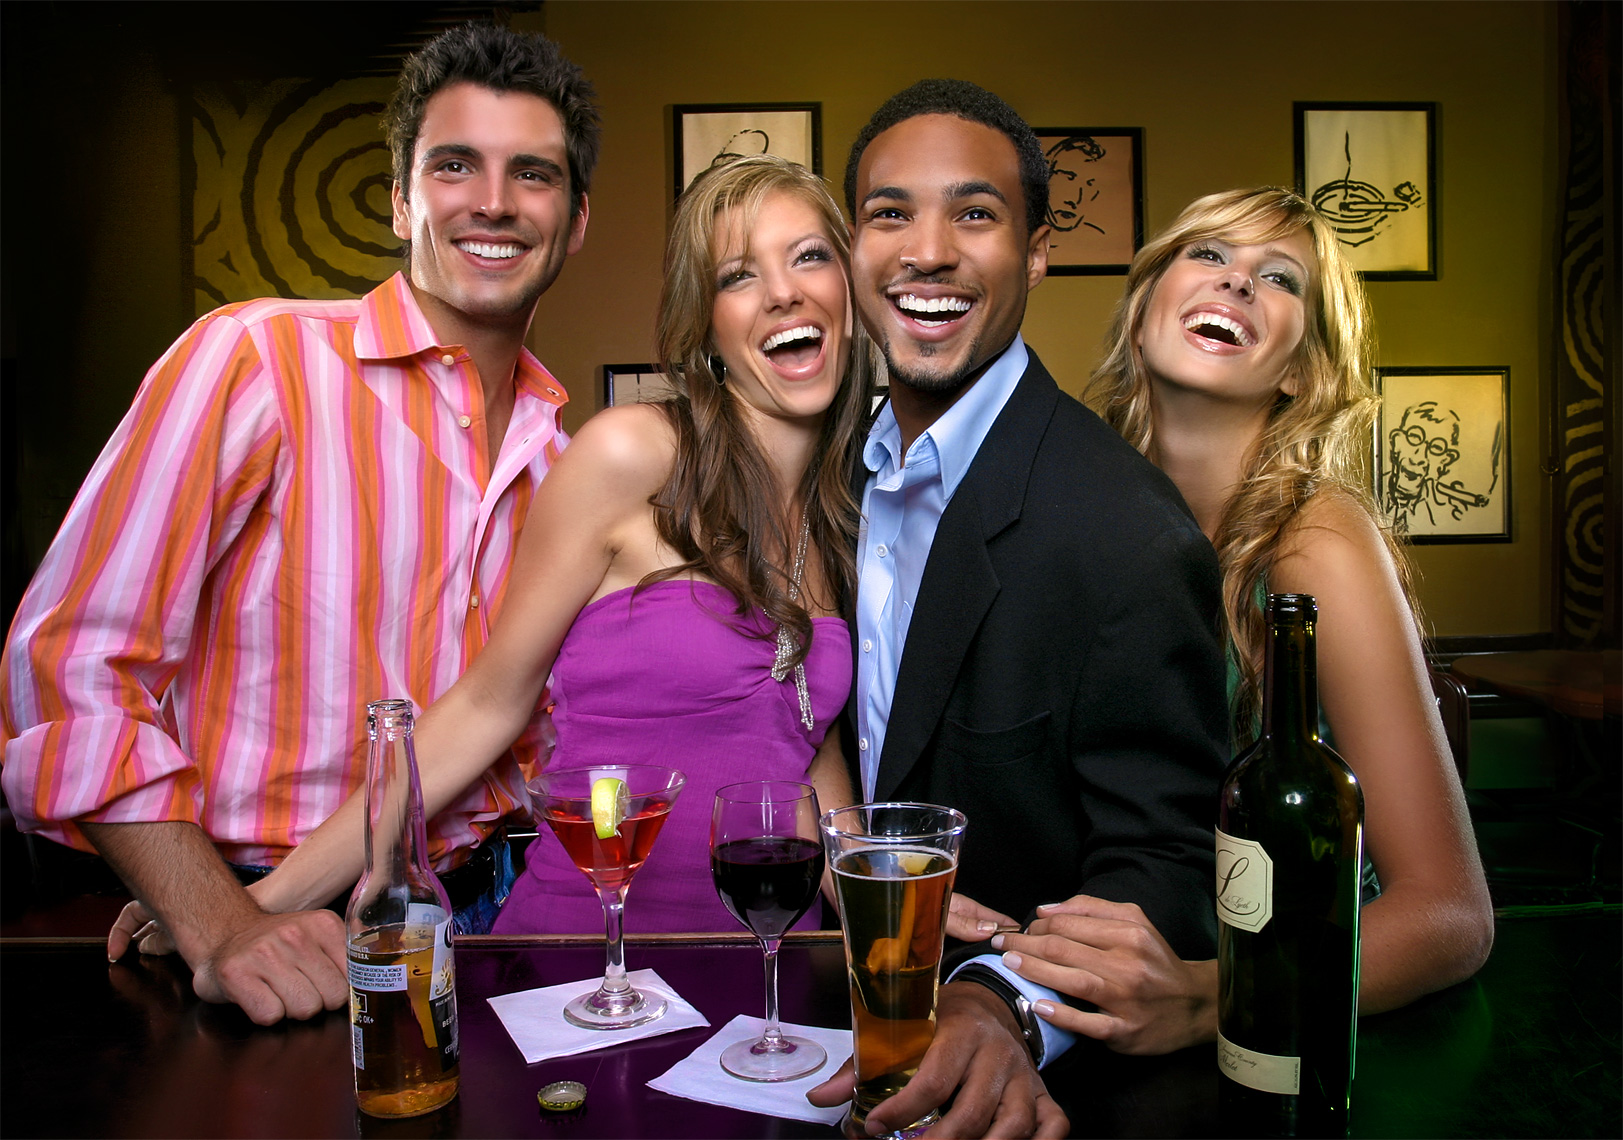 advertising-lifestyle-photo-for-casino-bar-ann-arbor-commercial-photographer-scott-stewart